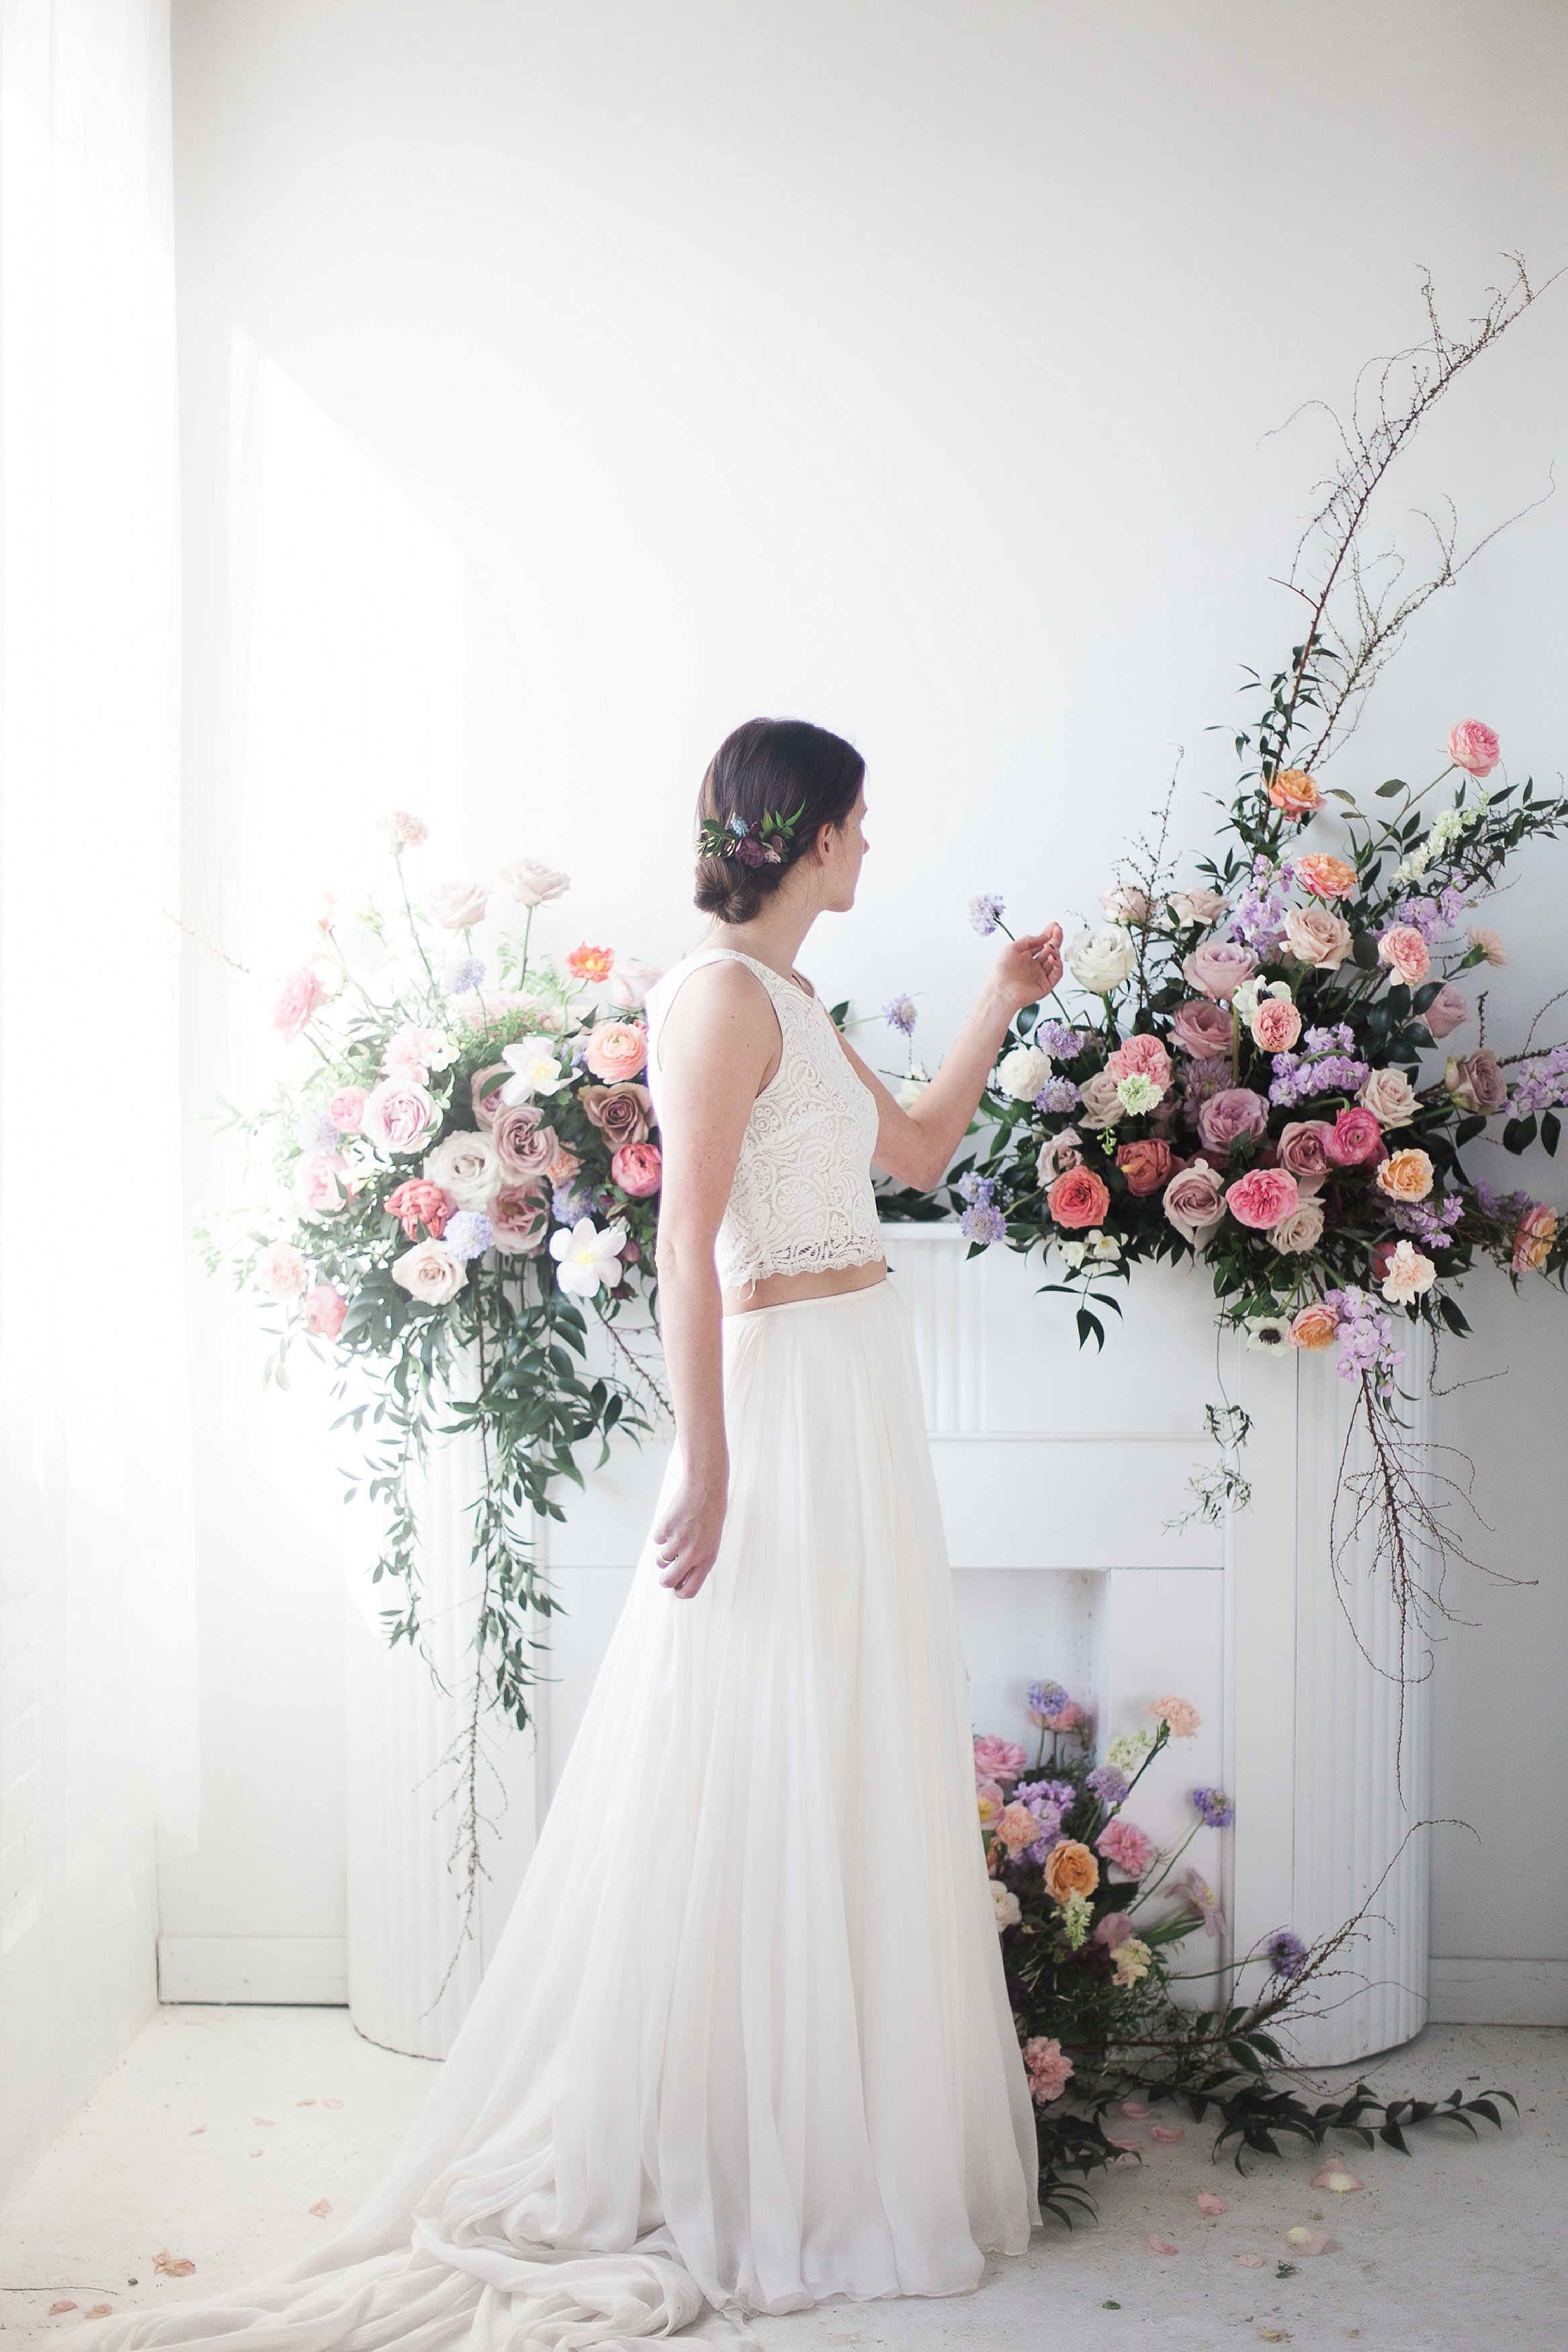 Academy Florist Styled Shoot | Bridal Portraits with bouquet | Bliss Bridal Boutique | photographed by Film photographer Keila Marie Photography